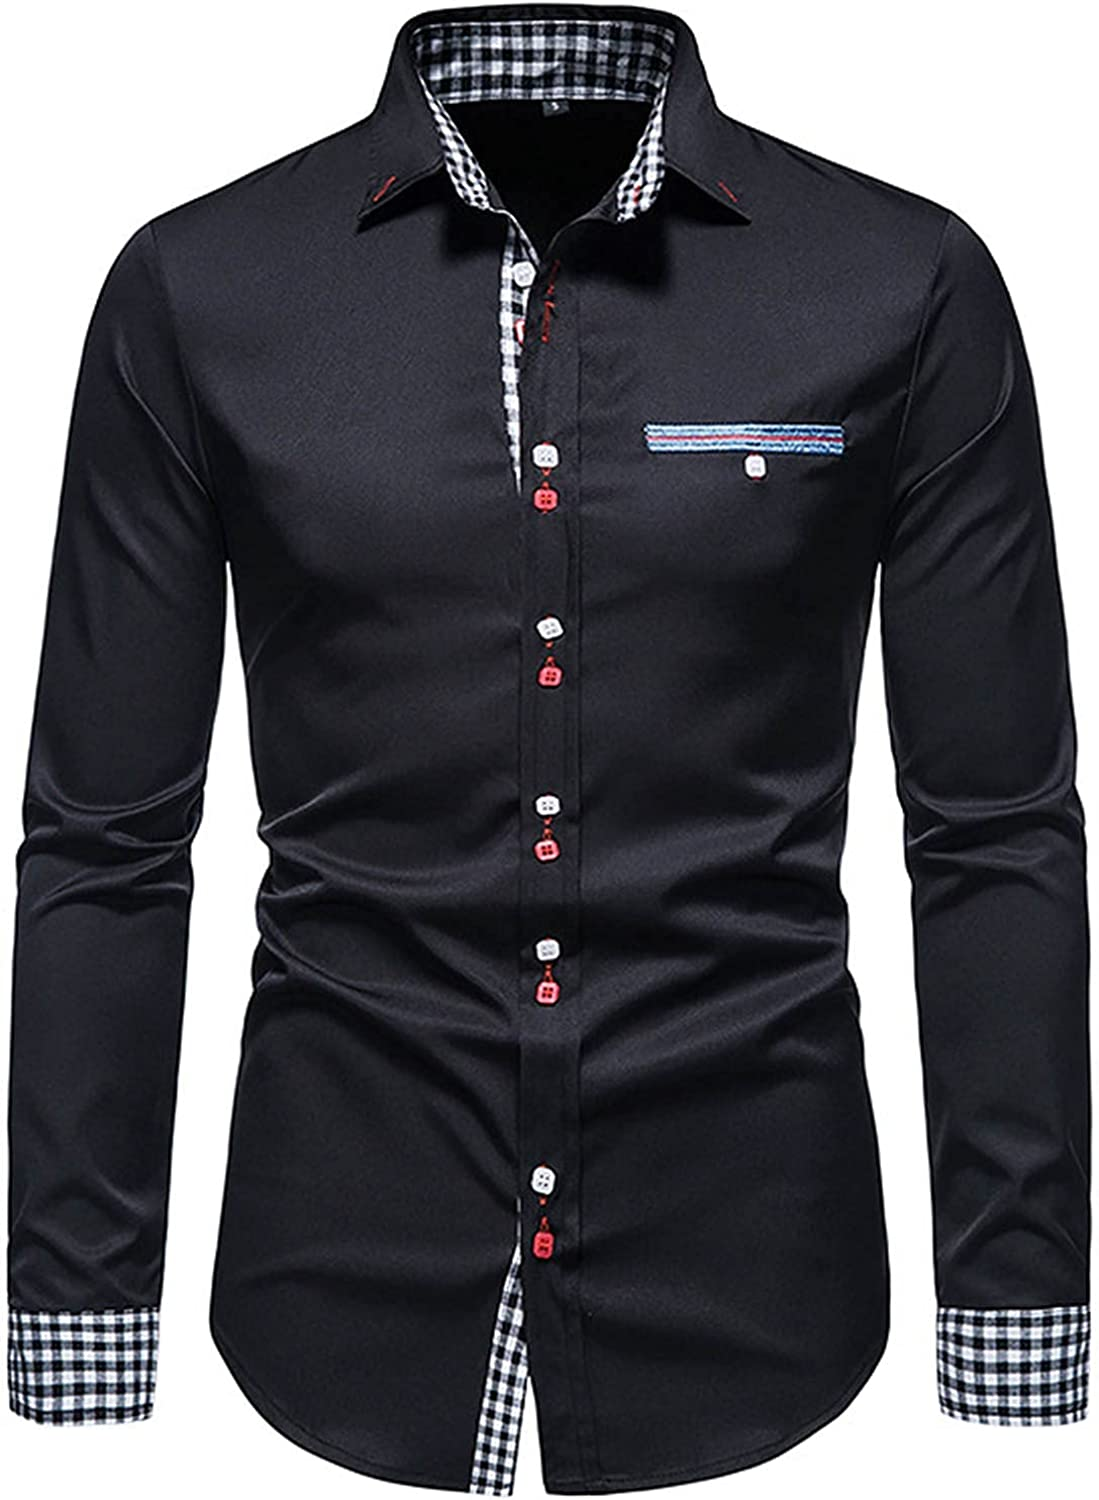 Men's Dress Satin V Neck Long Sleeves Button Down Shirt Slim Fit Prom Party Shirts with French Cuff Chemise